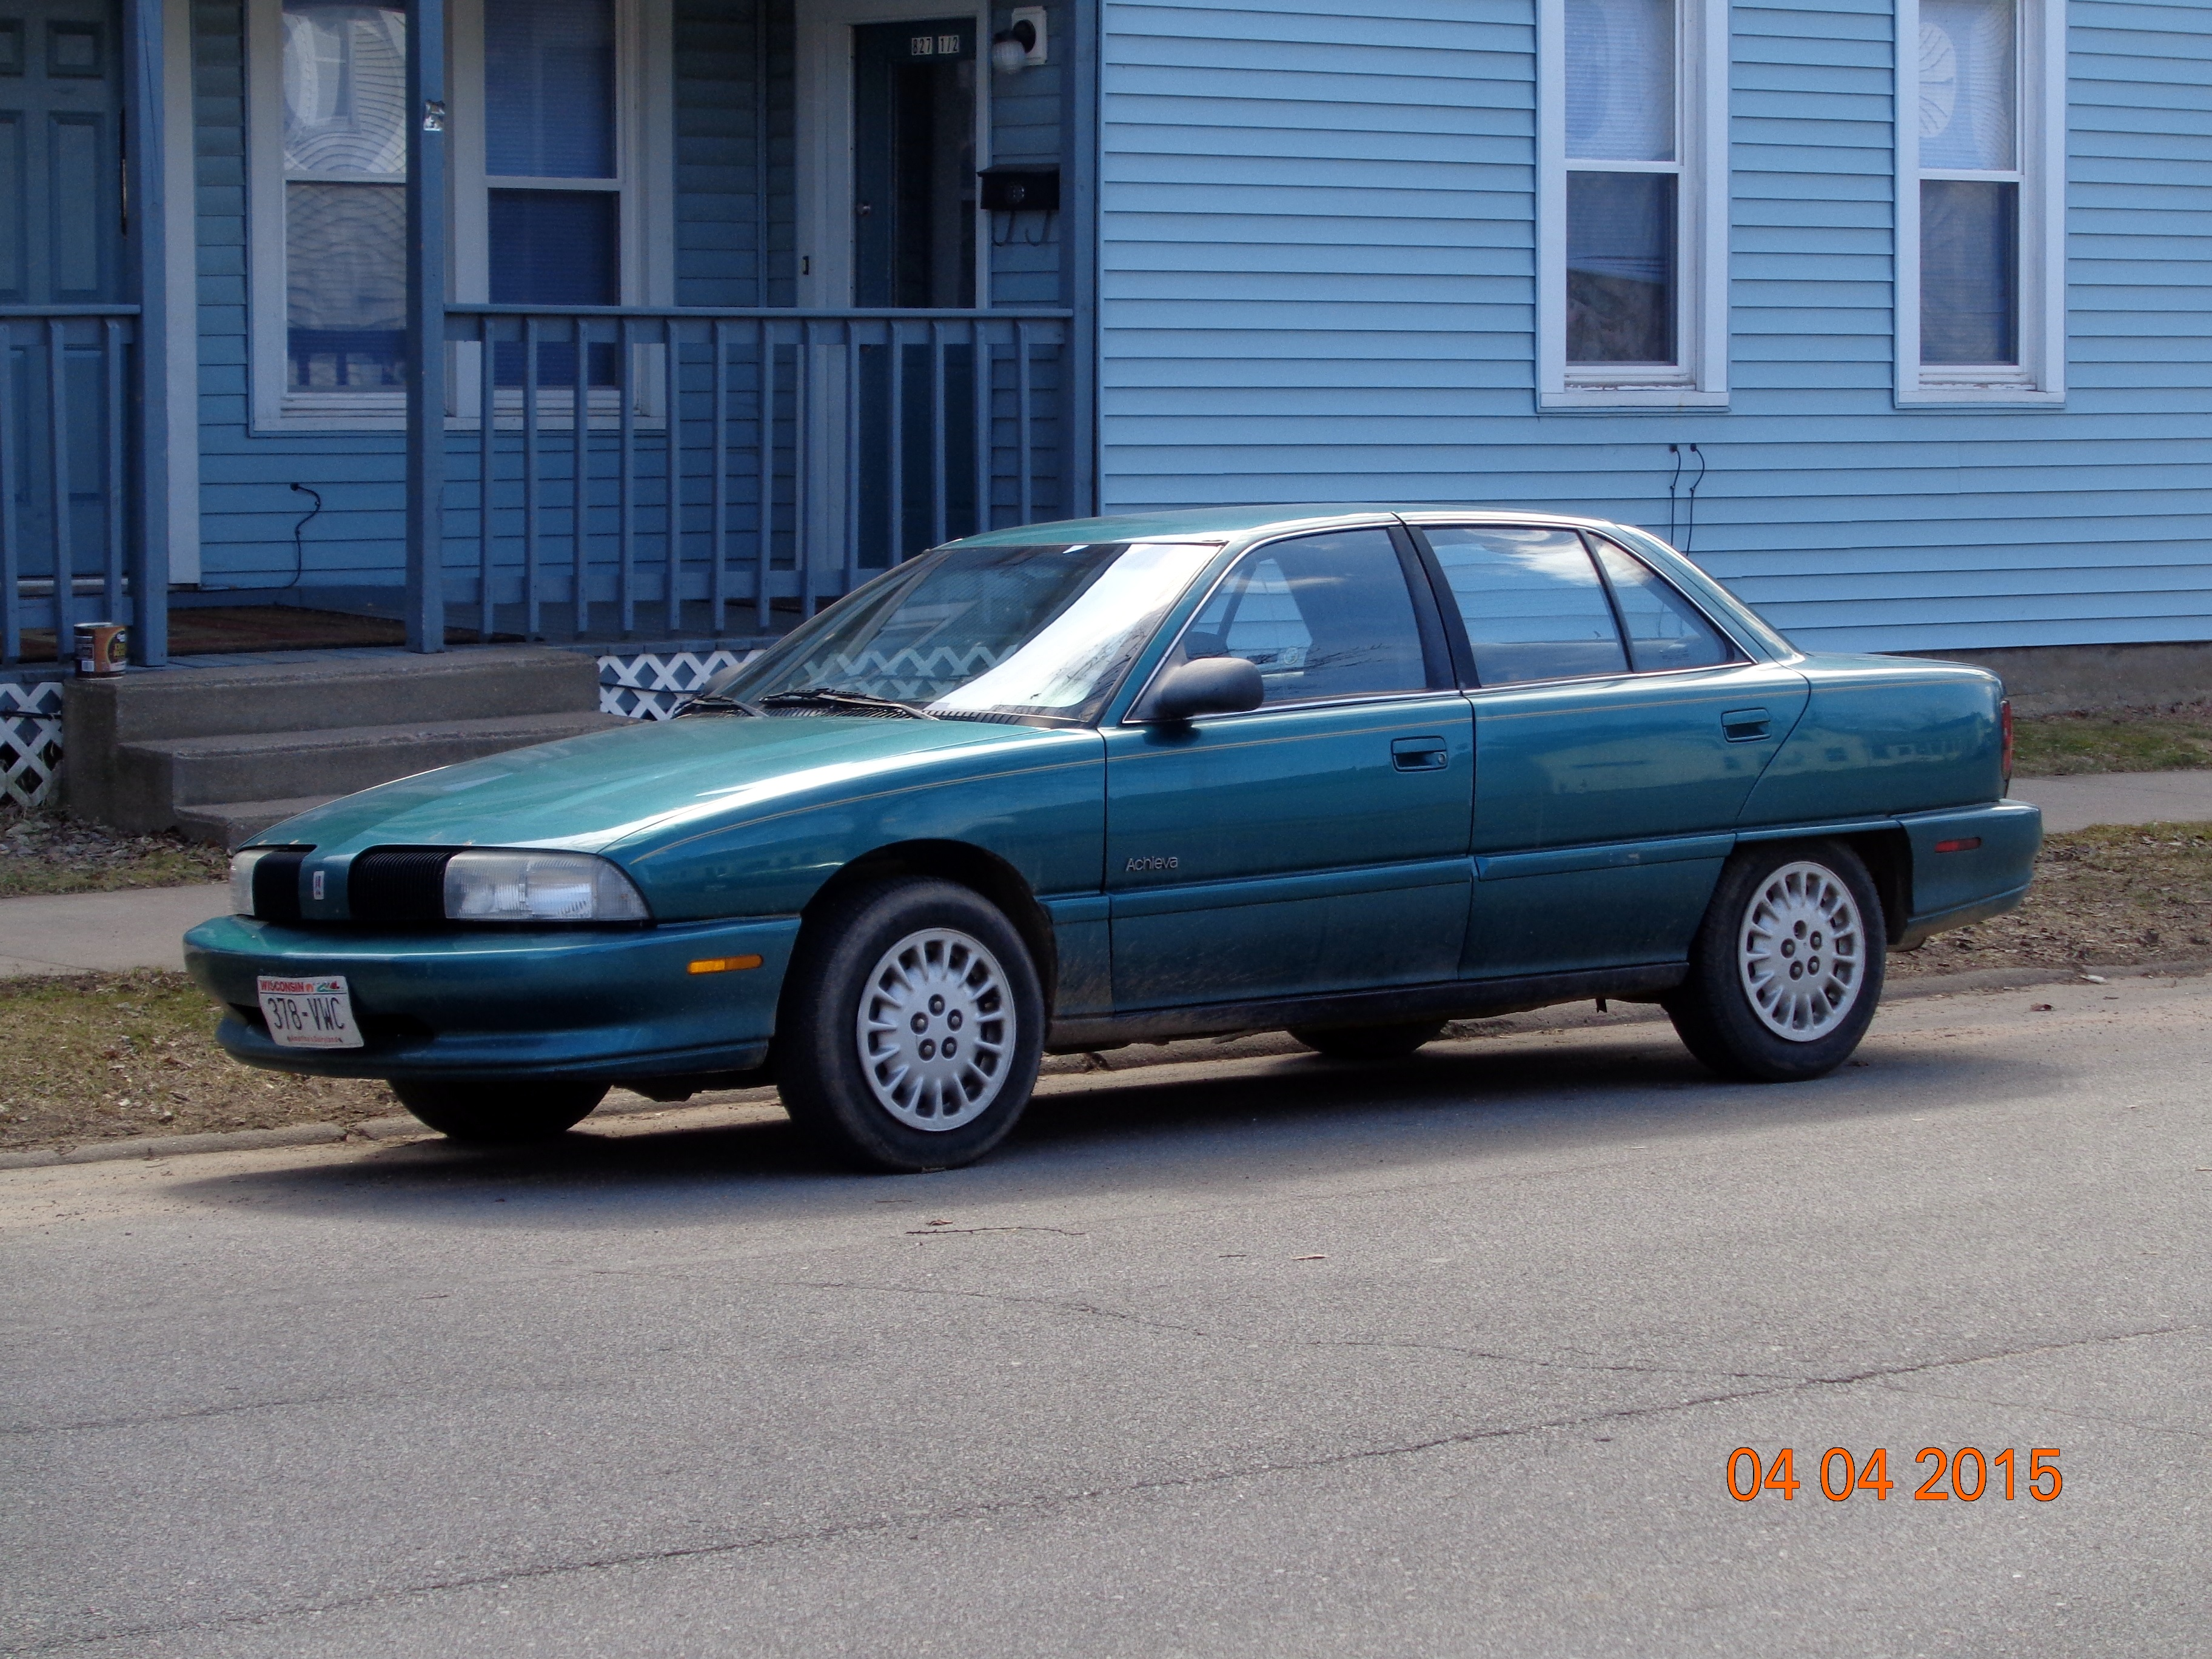 1996 oldsmobile achieva sl by eyecrunchyfraug on deviantart 1996 oldsmobile achieva sl by eyecrunchyfraug on deviantart